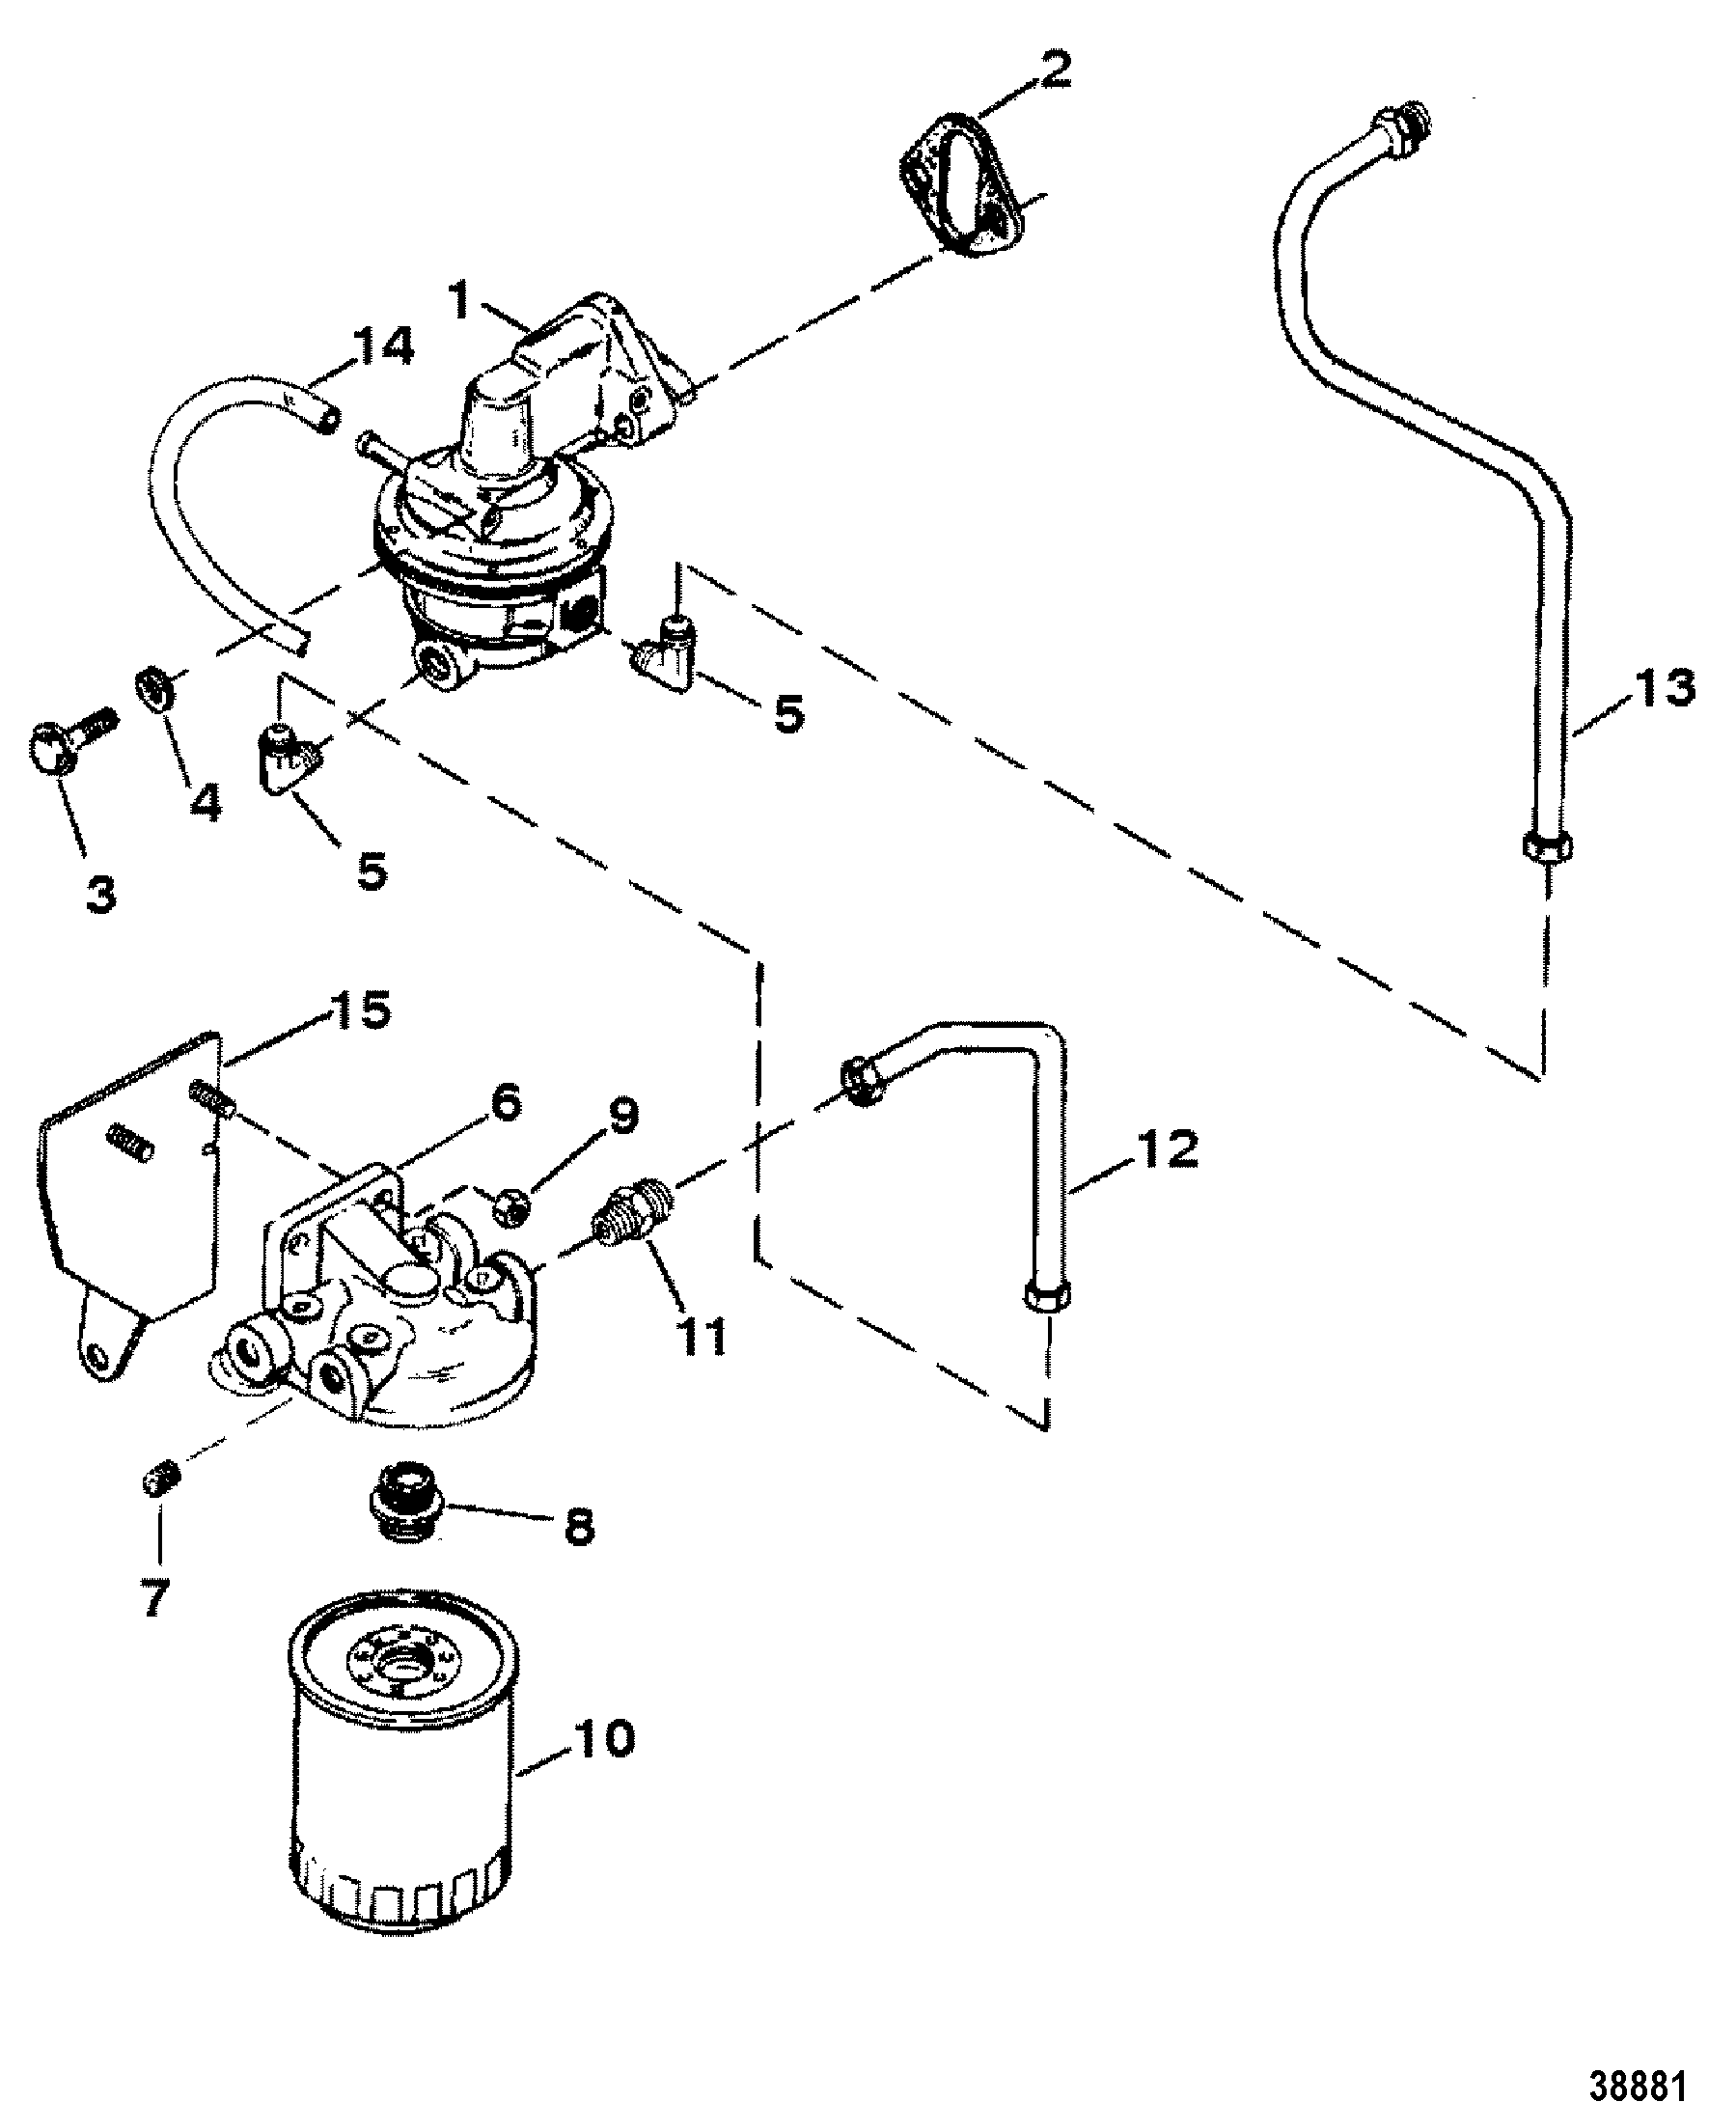 hight resolution of 7 3 fuel filter diagram wiring diagram used 1989 7 3 fuel system diagram